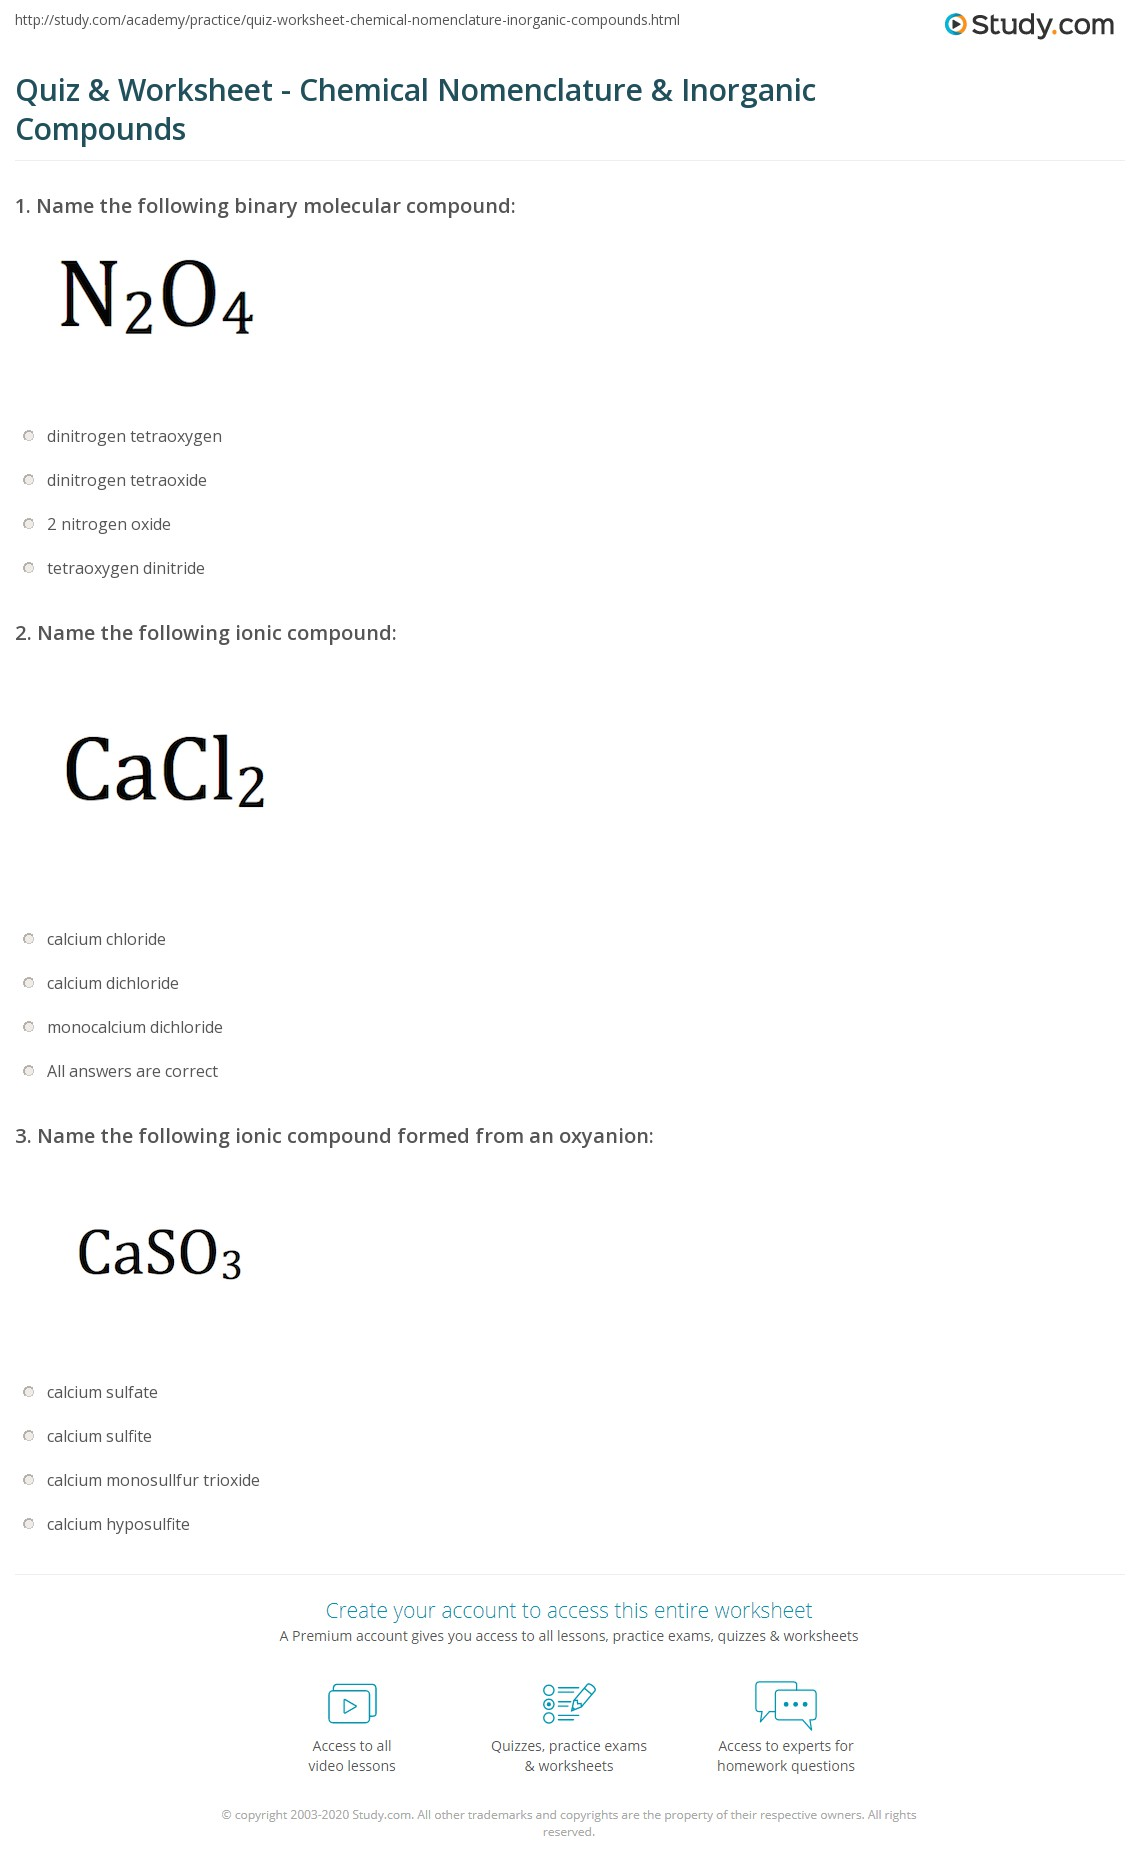 Quiz Worksheet Chemical Nomenclature Inorganic Compounds – Titration Practice Worksheet